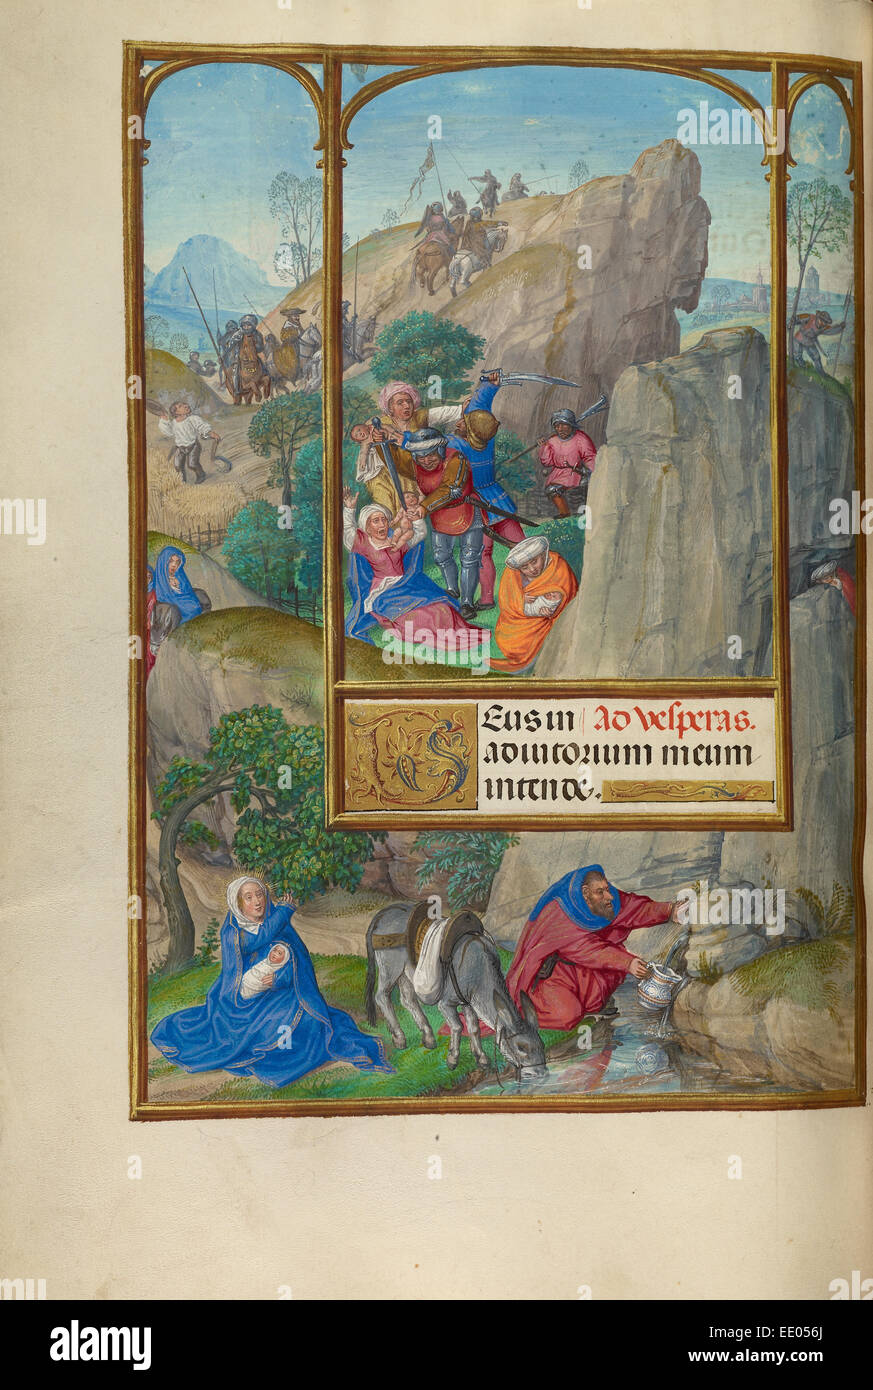 The Massacre of the Innocents; Master of James IV of Scotland, Flemish, before 1465 - about 1541; Bruges, Belgium, - Stock Image